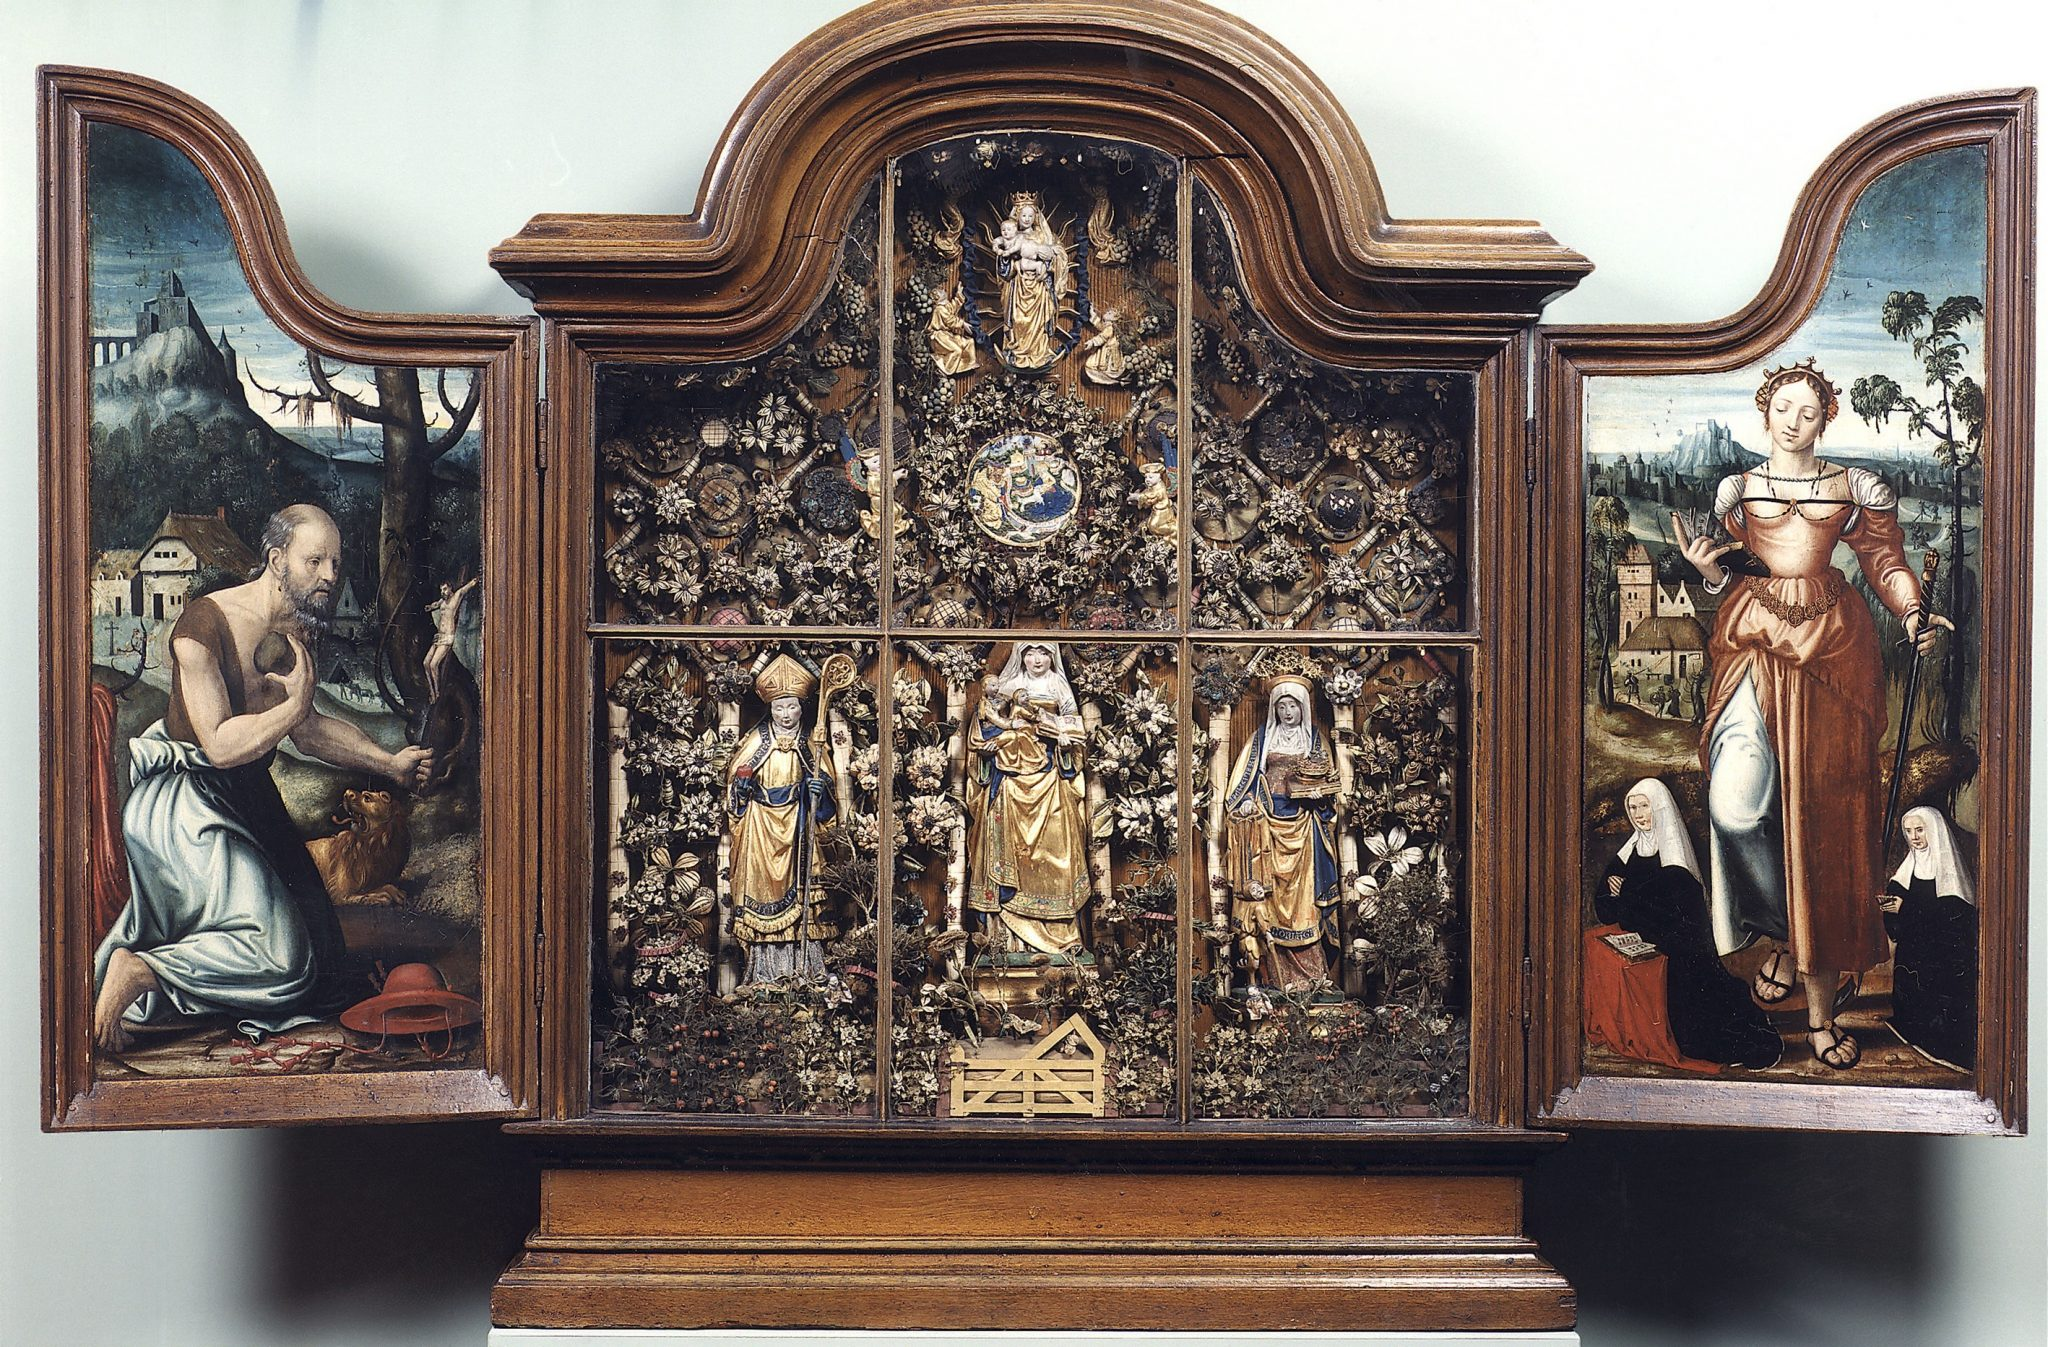 1529 ca Mechelen, Besloten Hofje with Saint Anne, Virgin Mary, and Christ Child Augustine, and Saint Elisabeth, Museum_Hof_van_Busleyden_Mechelen(c) Kirk-IRPA